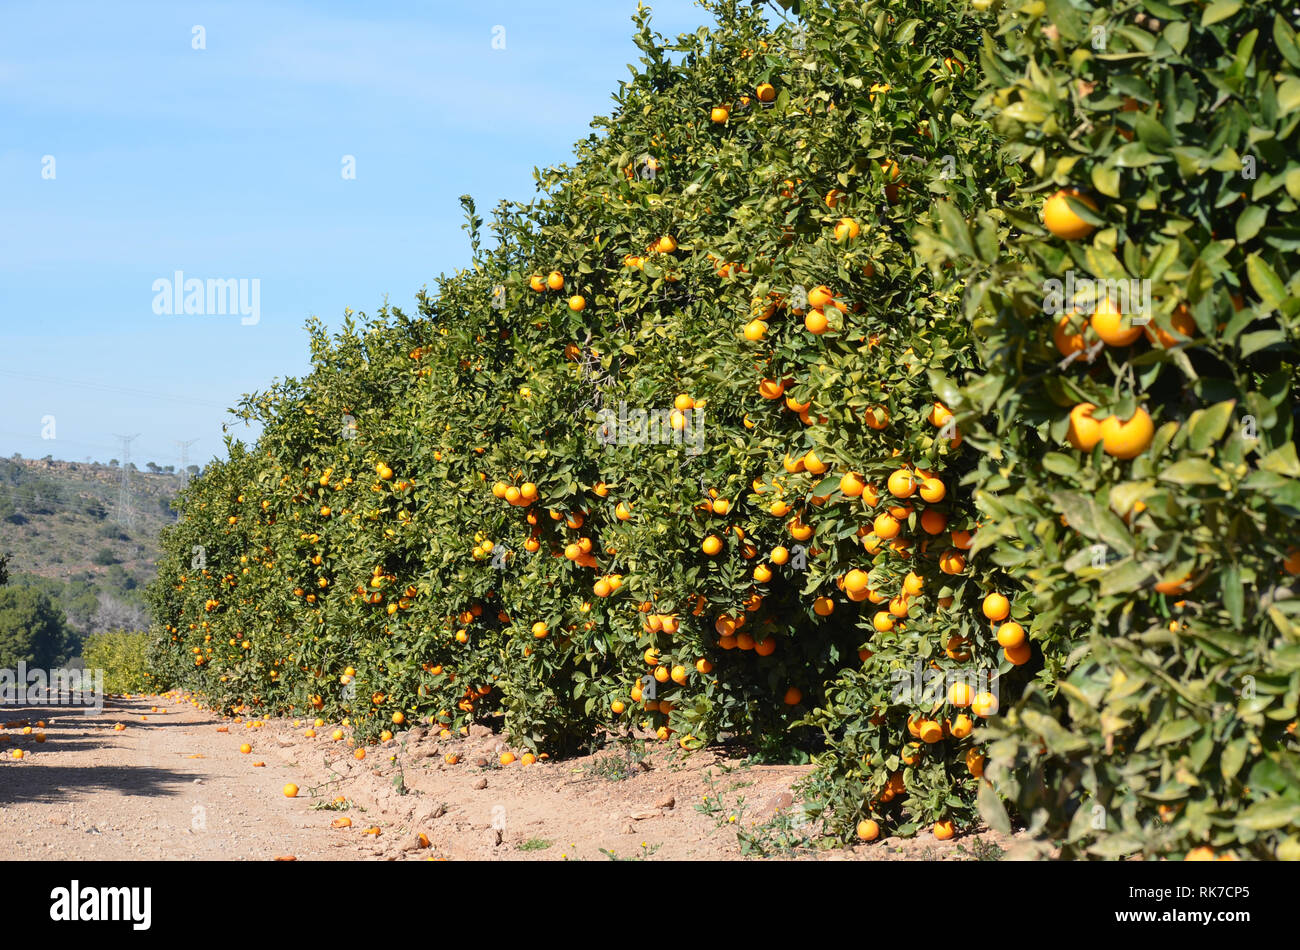 Oranges left unpicked in the trees and rotting in the ground, showing the effects of the 2019 citrus fruit crisis in València, Spain - Stock Image